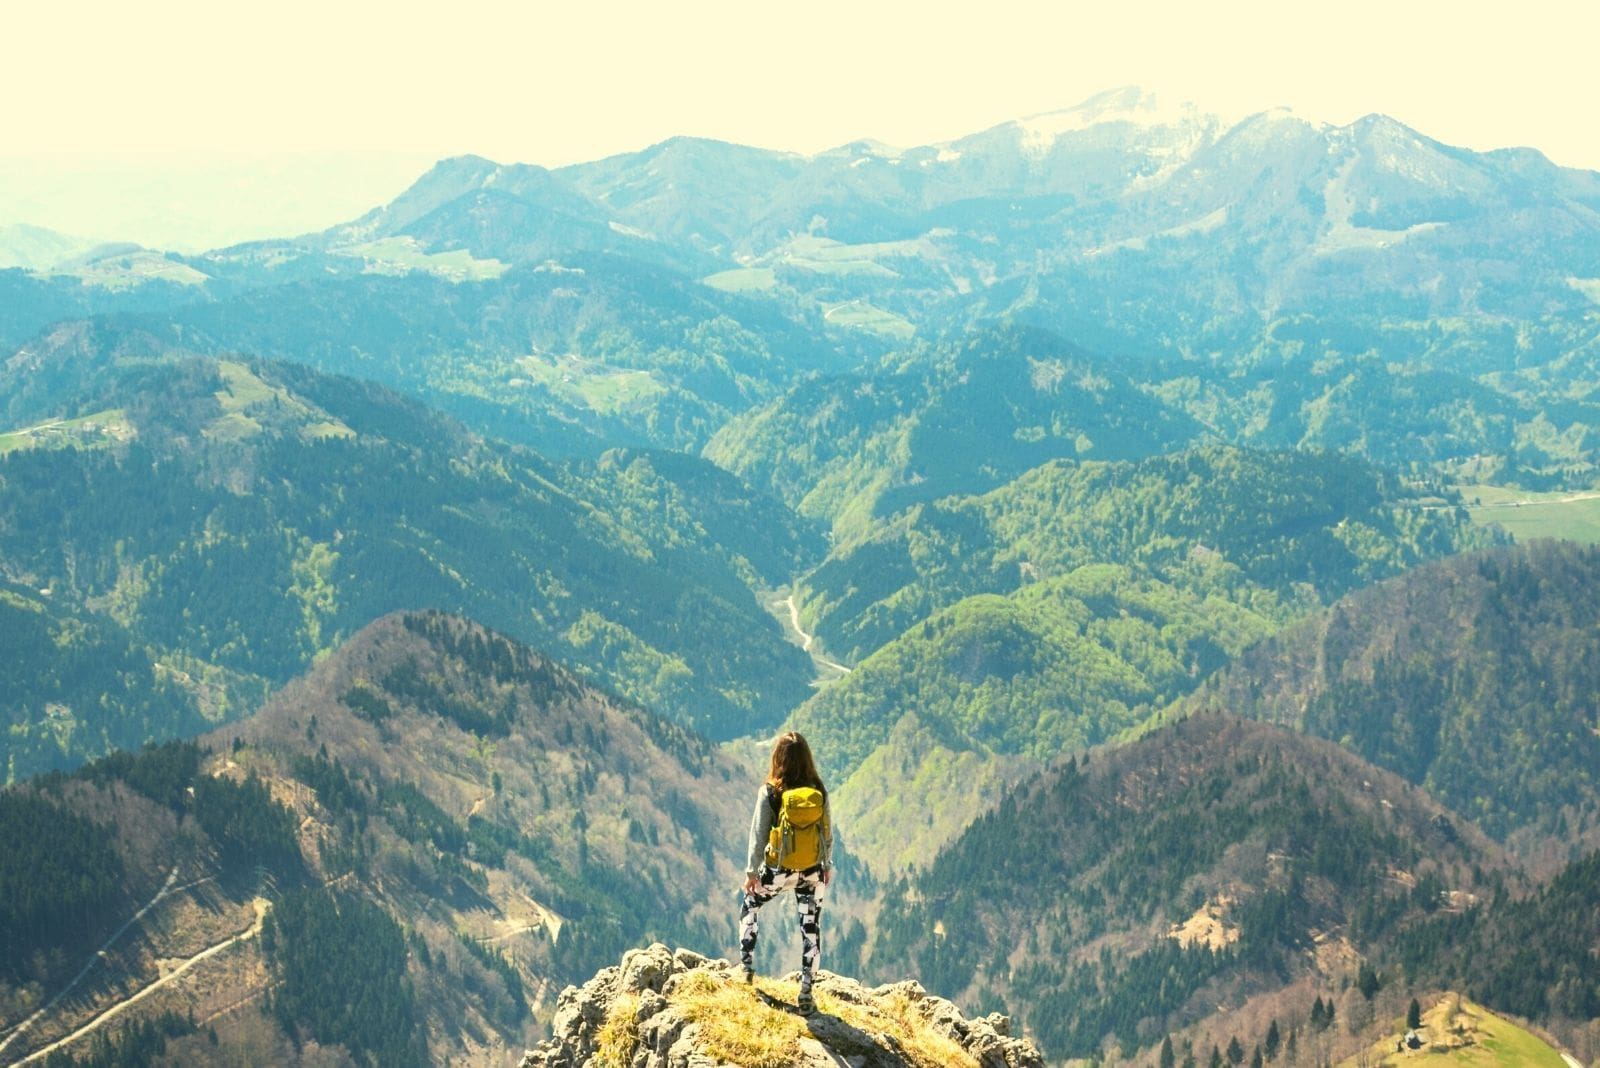 woman standing at the mountain top looking over the mountain ranges in very distant view